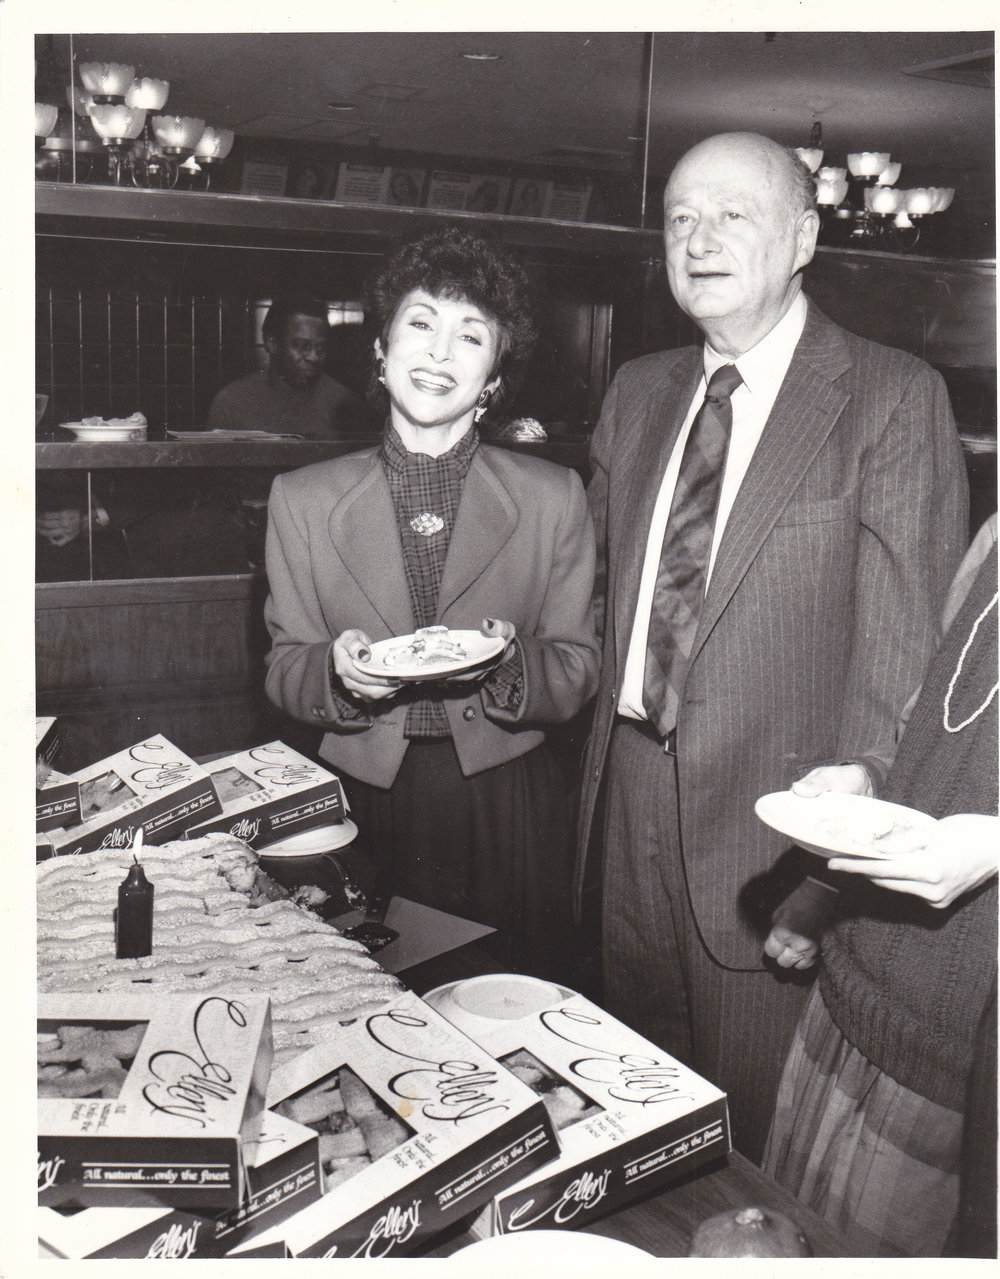 Ellen With Mayor Ed Koch - For many years Ellen would have the Cafe bake as many pies as the birthday being celebrated by beloved NYC Mayor Ed Koch who would donate them to the charity of his choice. The tradition started here 1984 was continued through Mayor David Dinkin's and Mayor Rudolph Giuliani's terms as Mayors.